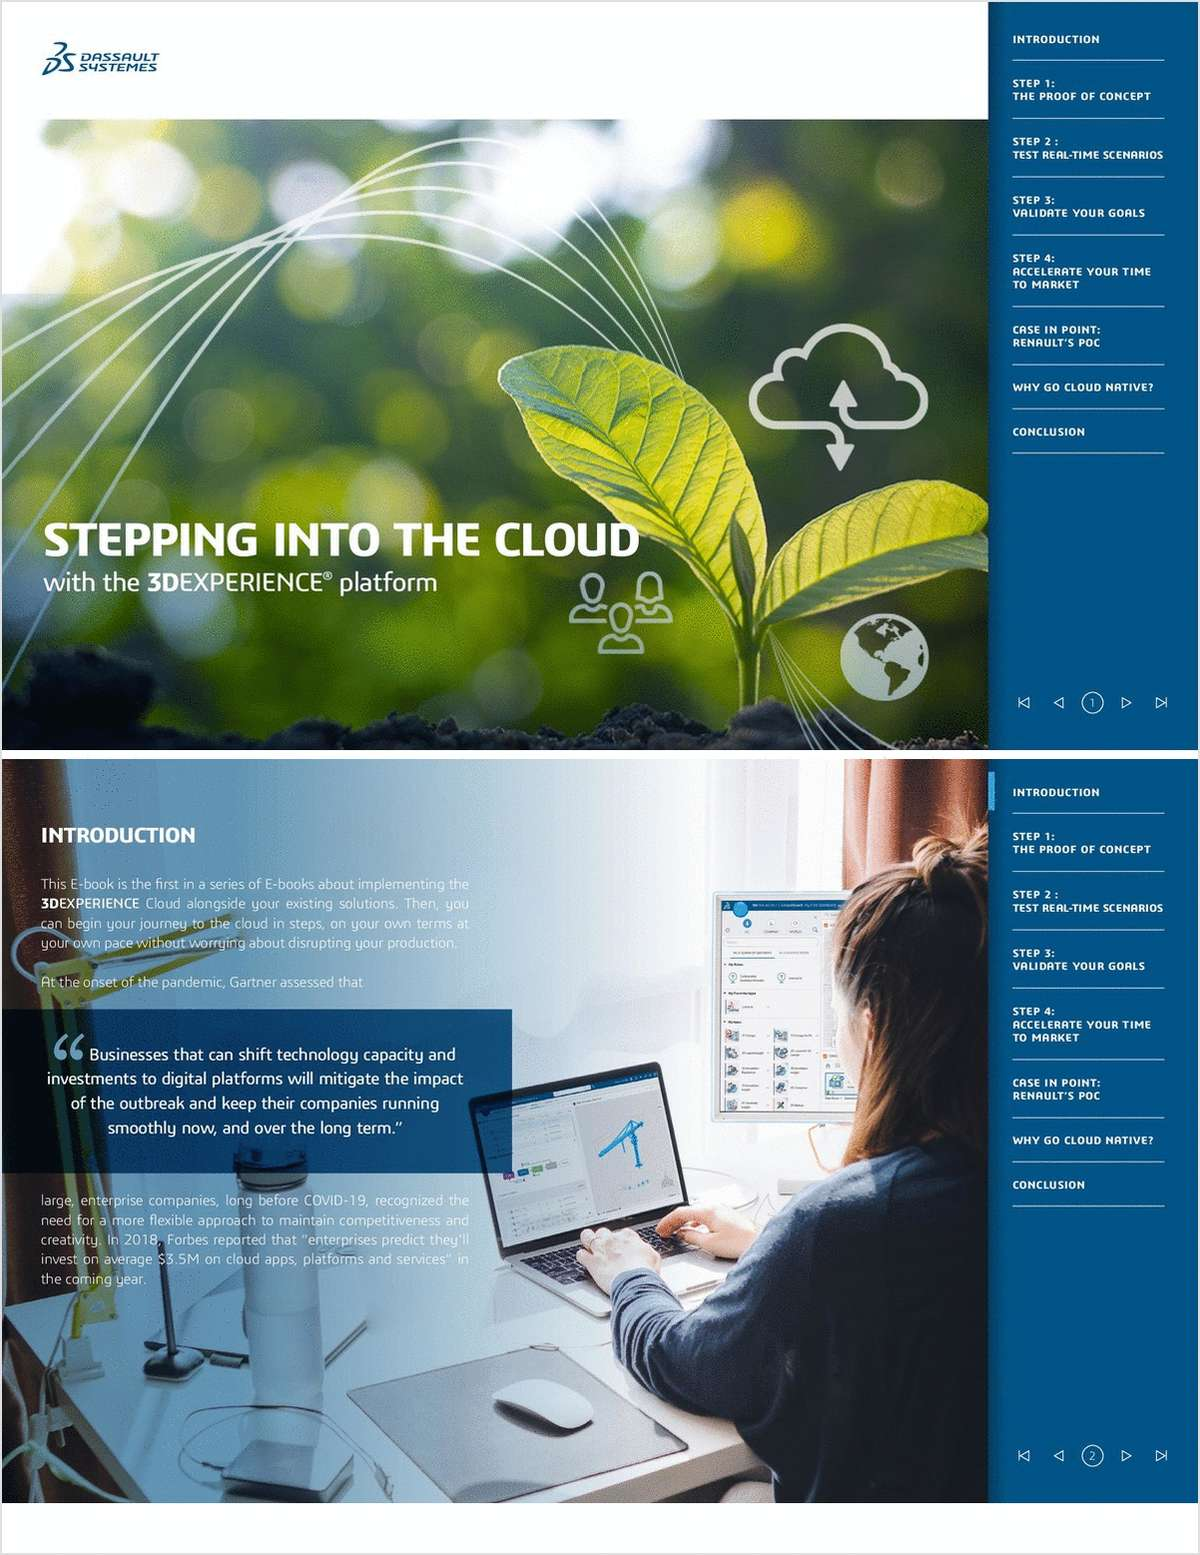 Stepping Into the Cloud with the 3DExperience Platform